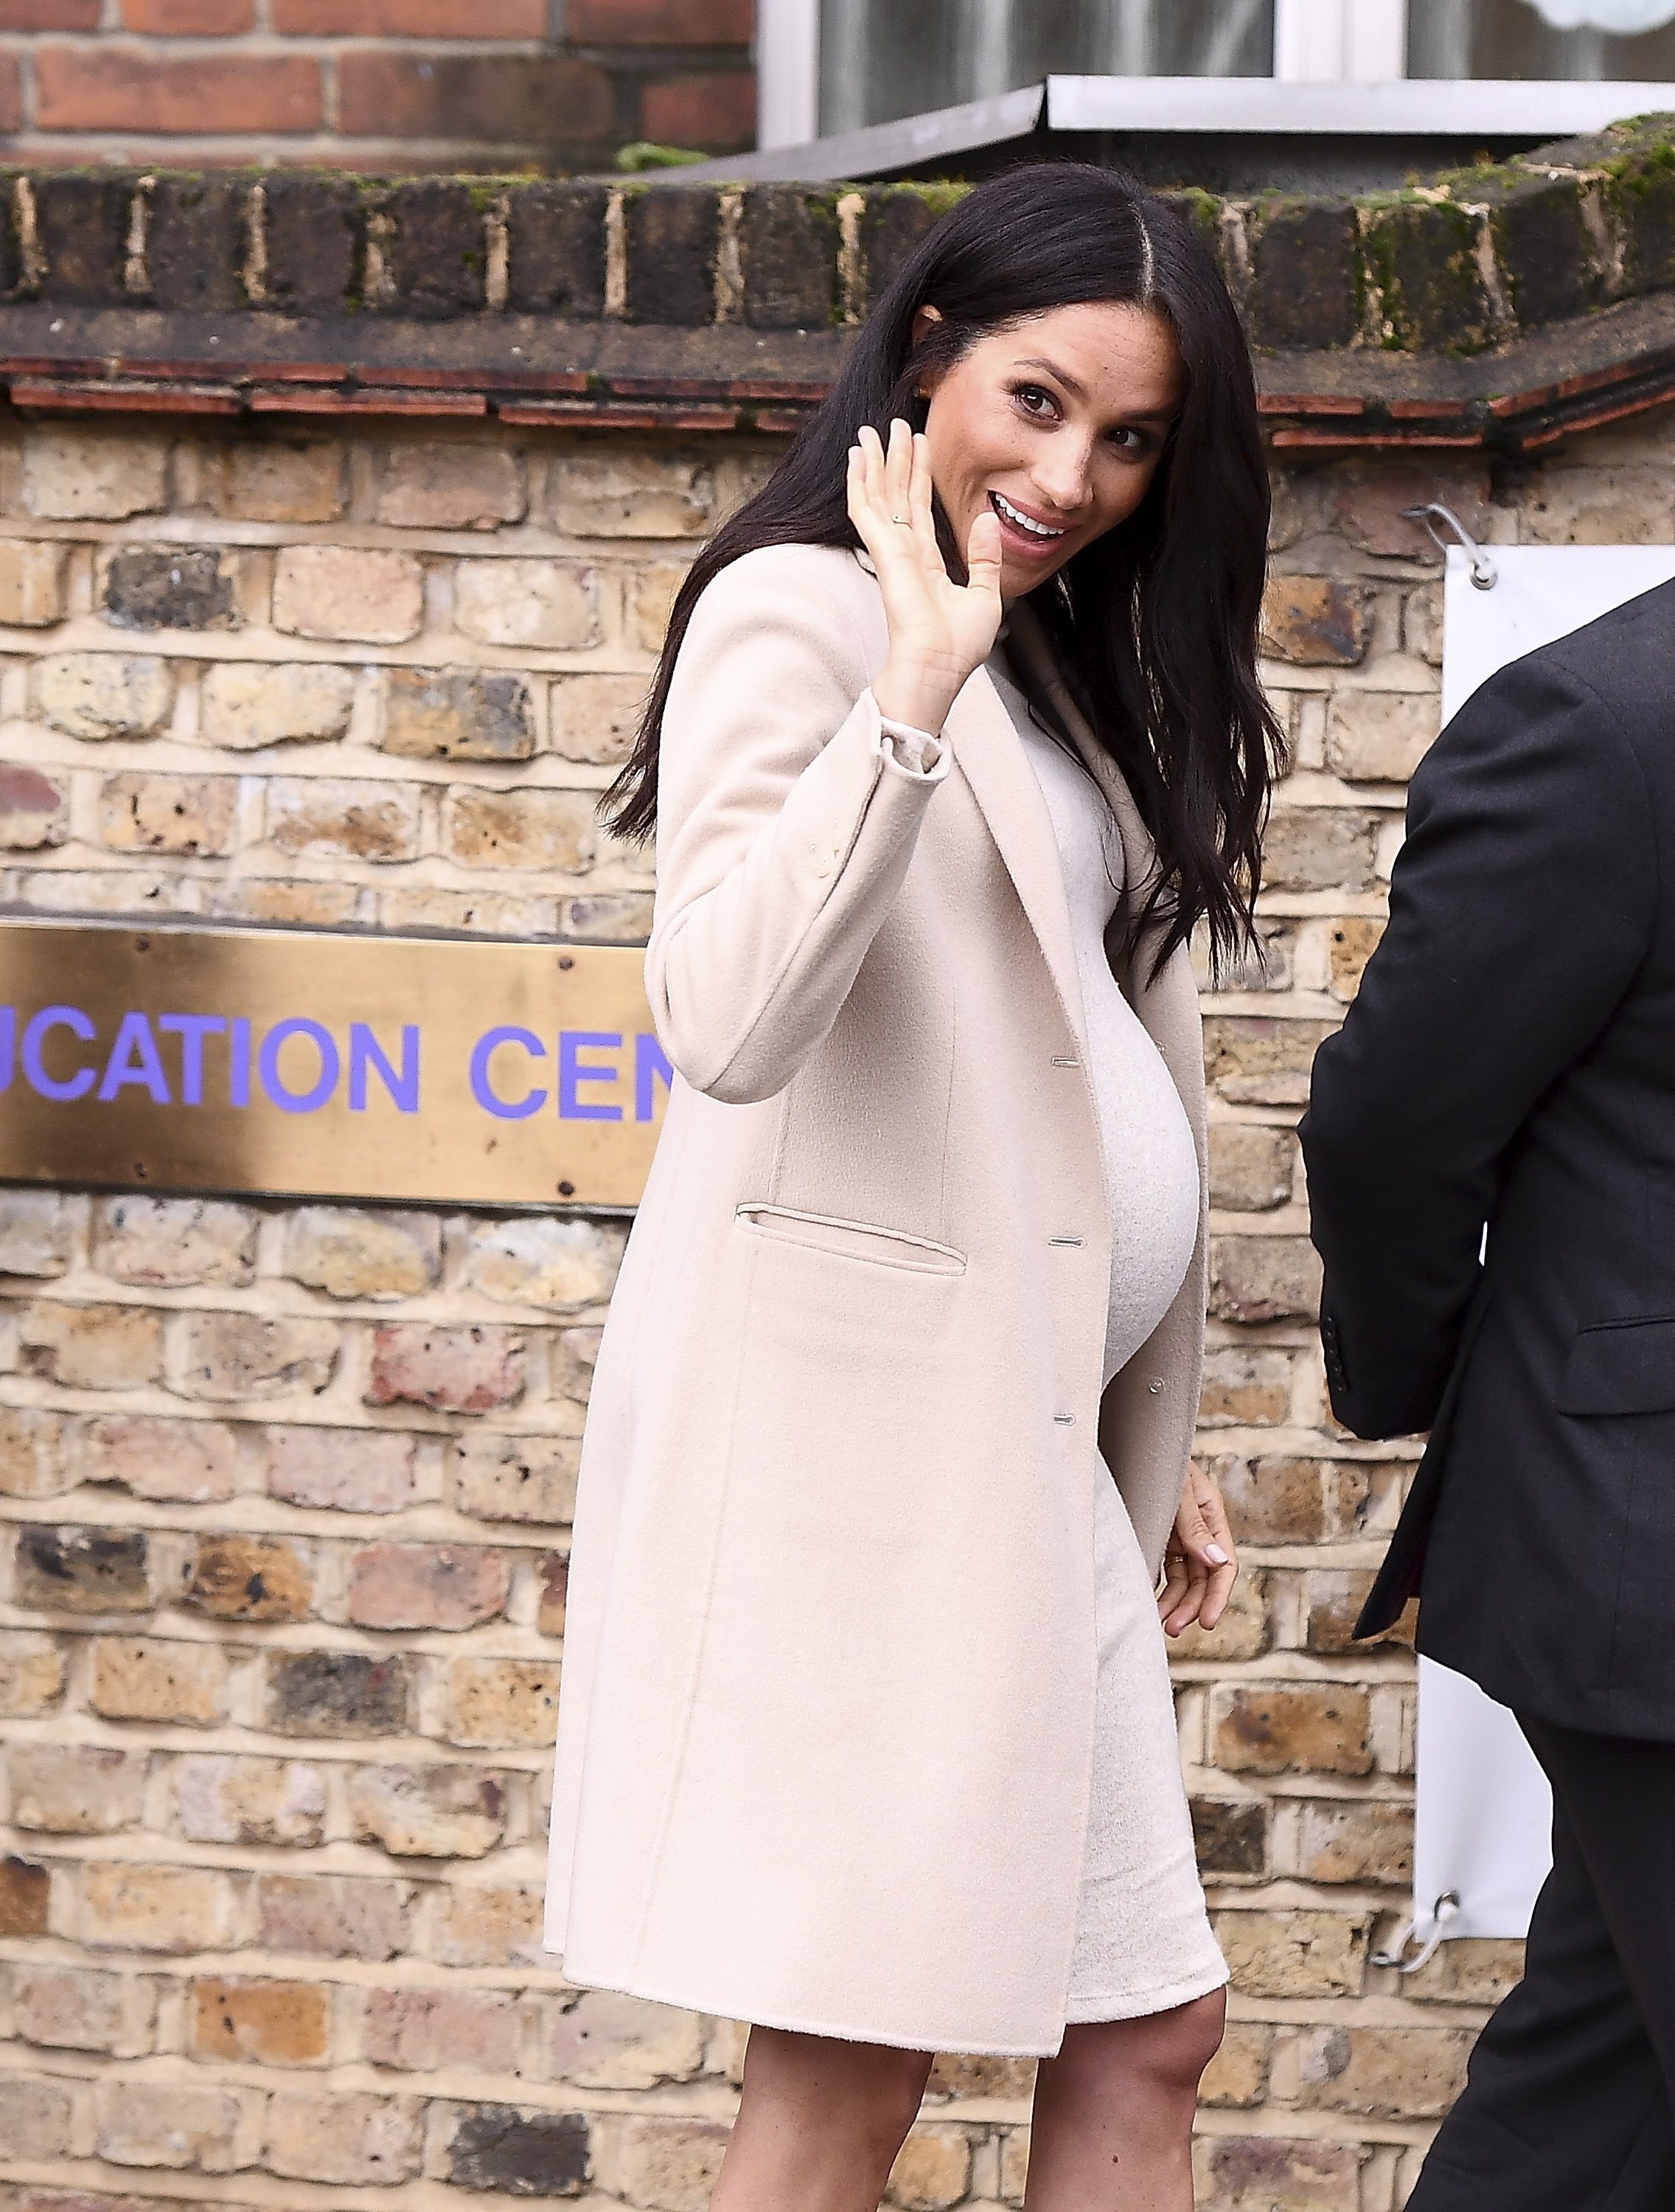 Meghan Markle visits Mayhew, an animal welfare charity on January 16, 2019, in London, England.   Source: Getty Images.